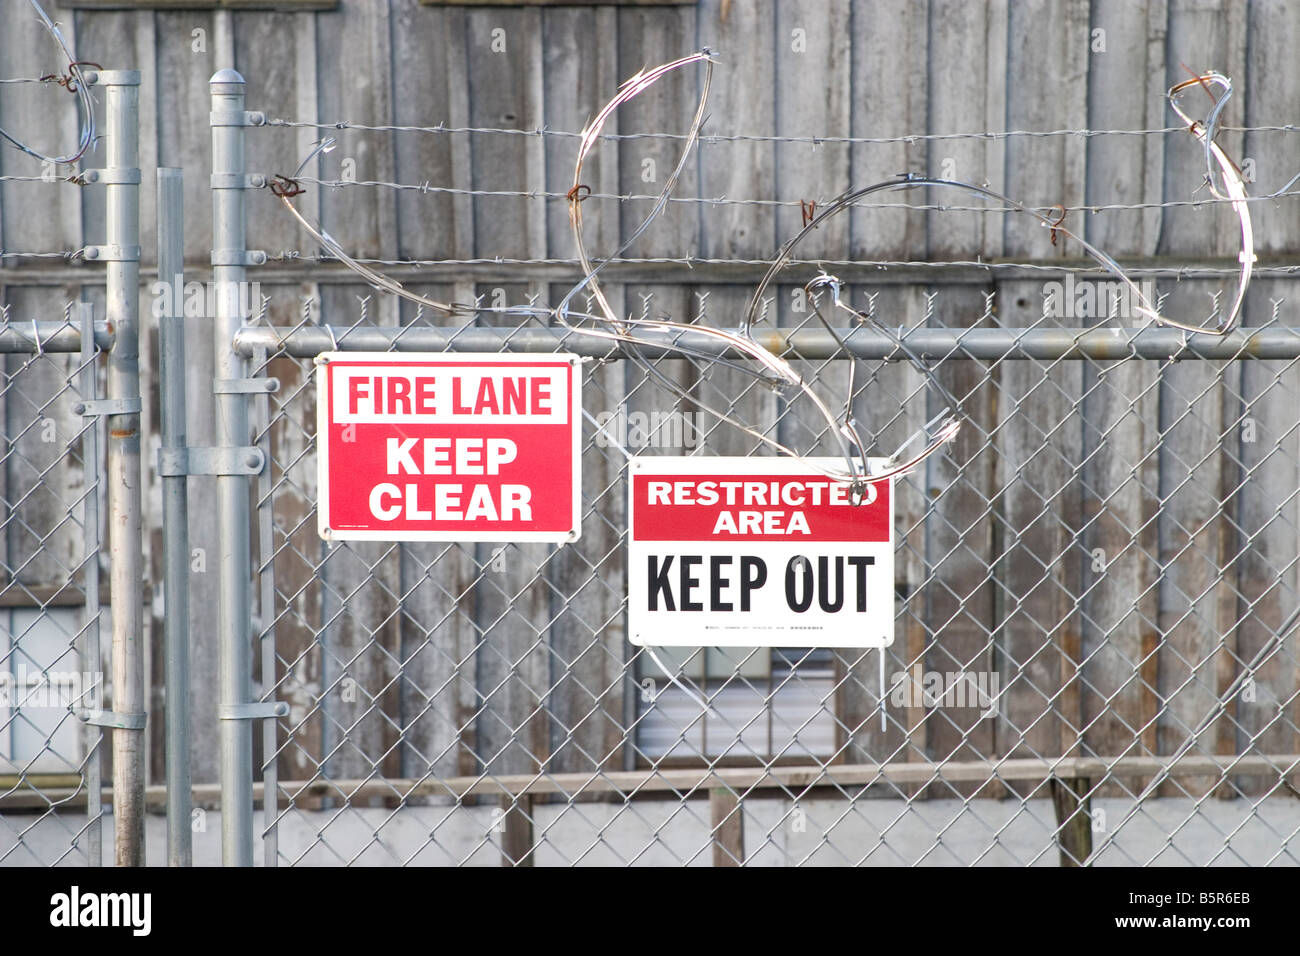 fire lane and restricted area signs on a wire fence - Stock Image